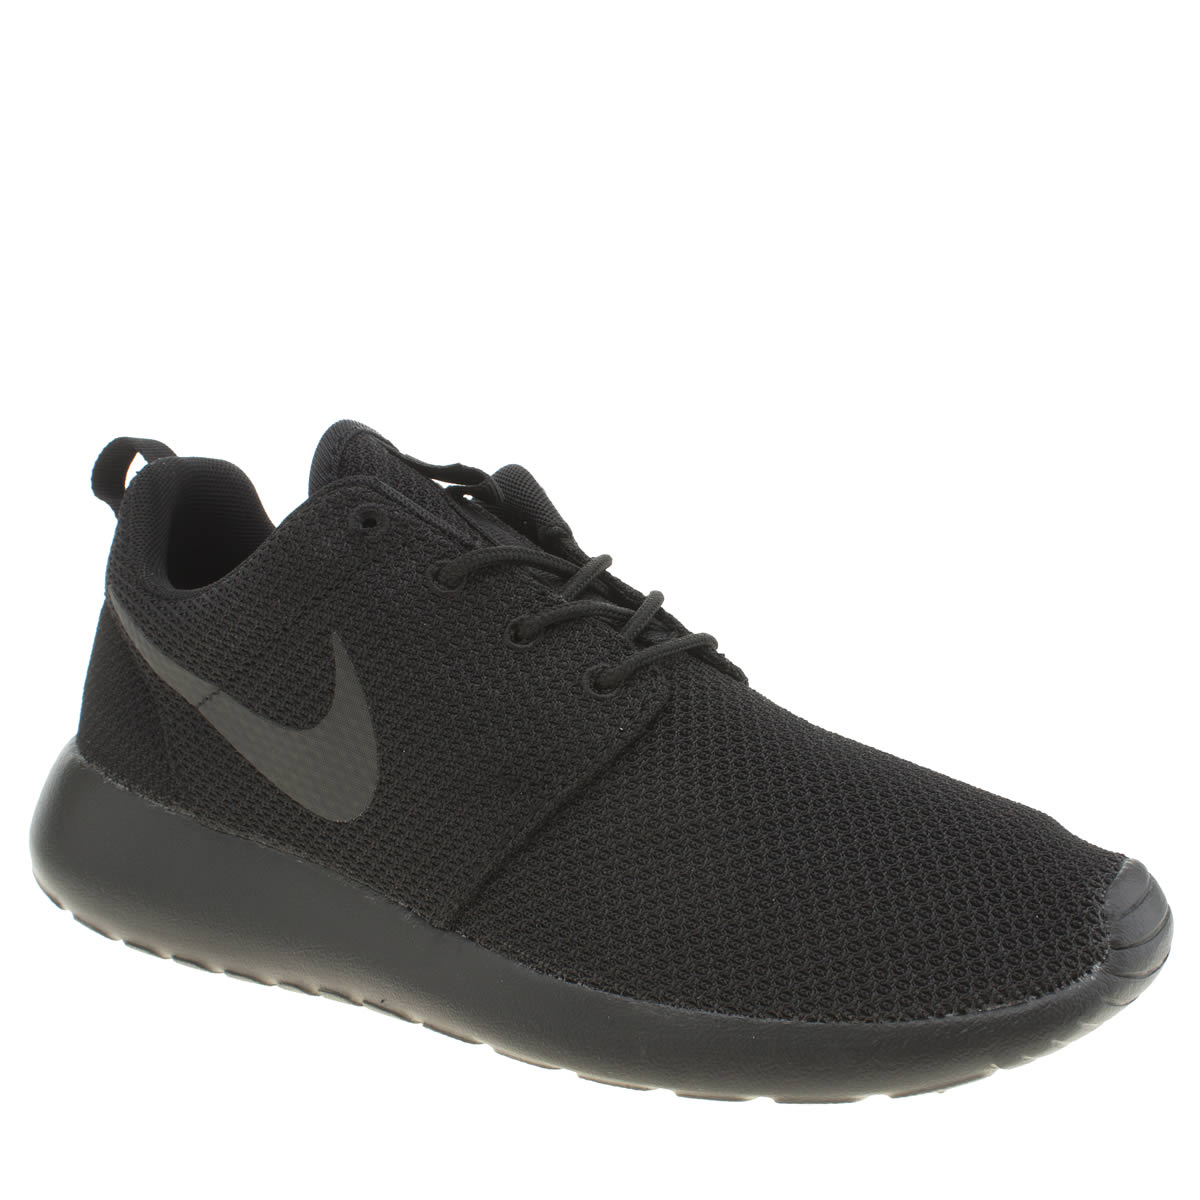 ukdquy Nike Roshe Run Trainers | Womens, Mens & Kids | schuh